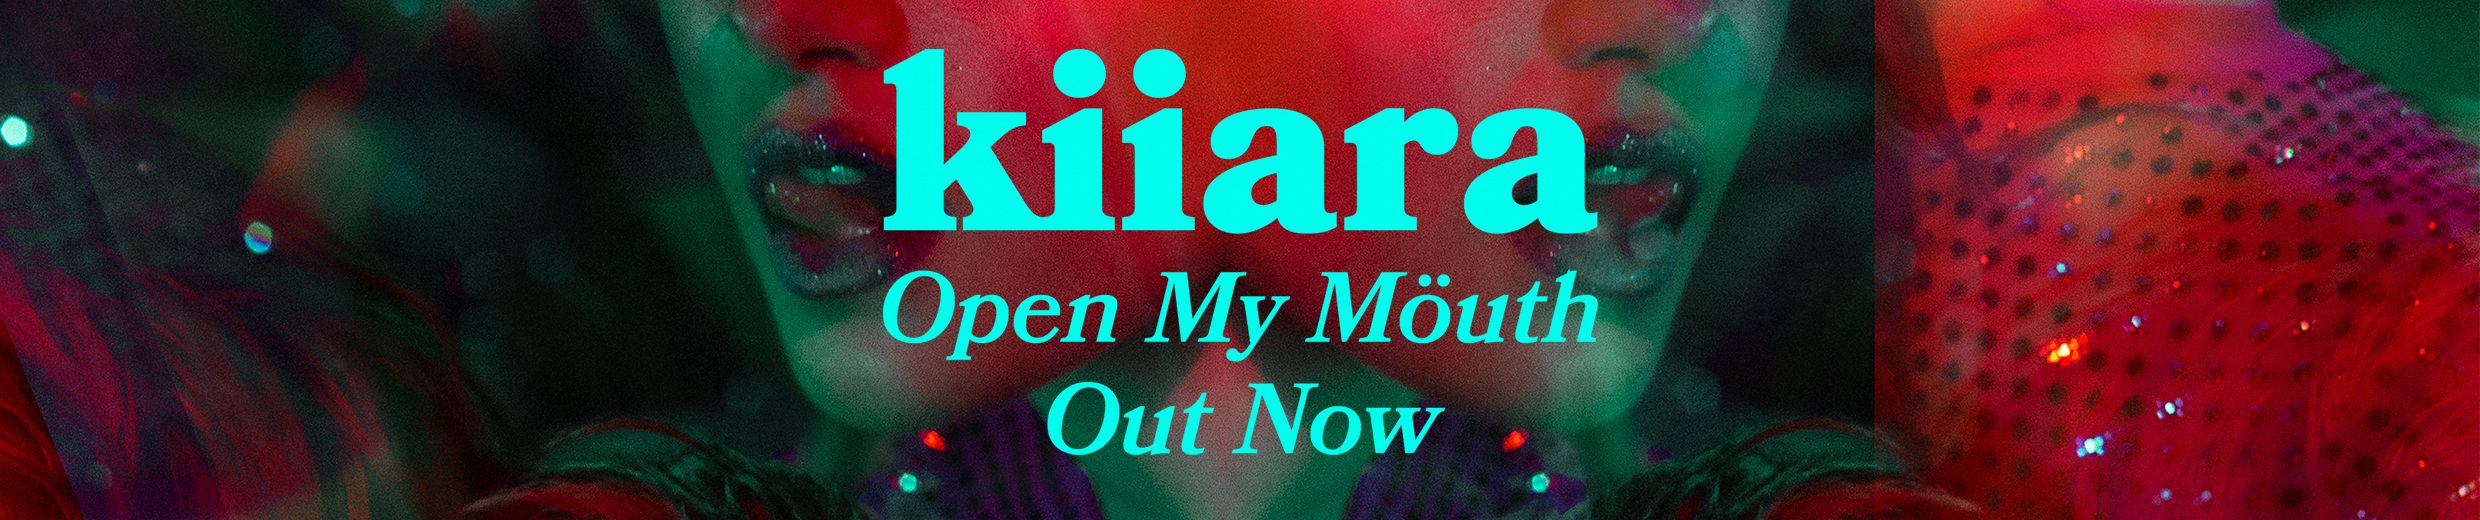 kiiara gold song free mp3 download